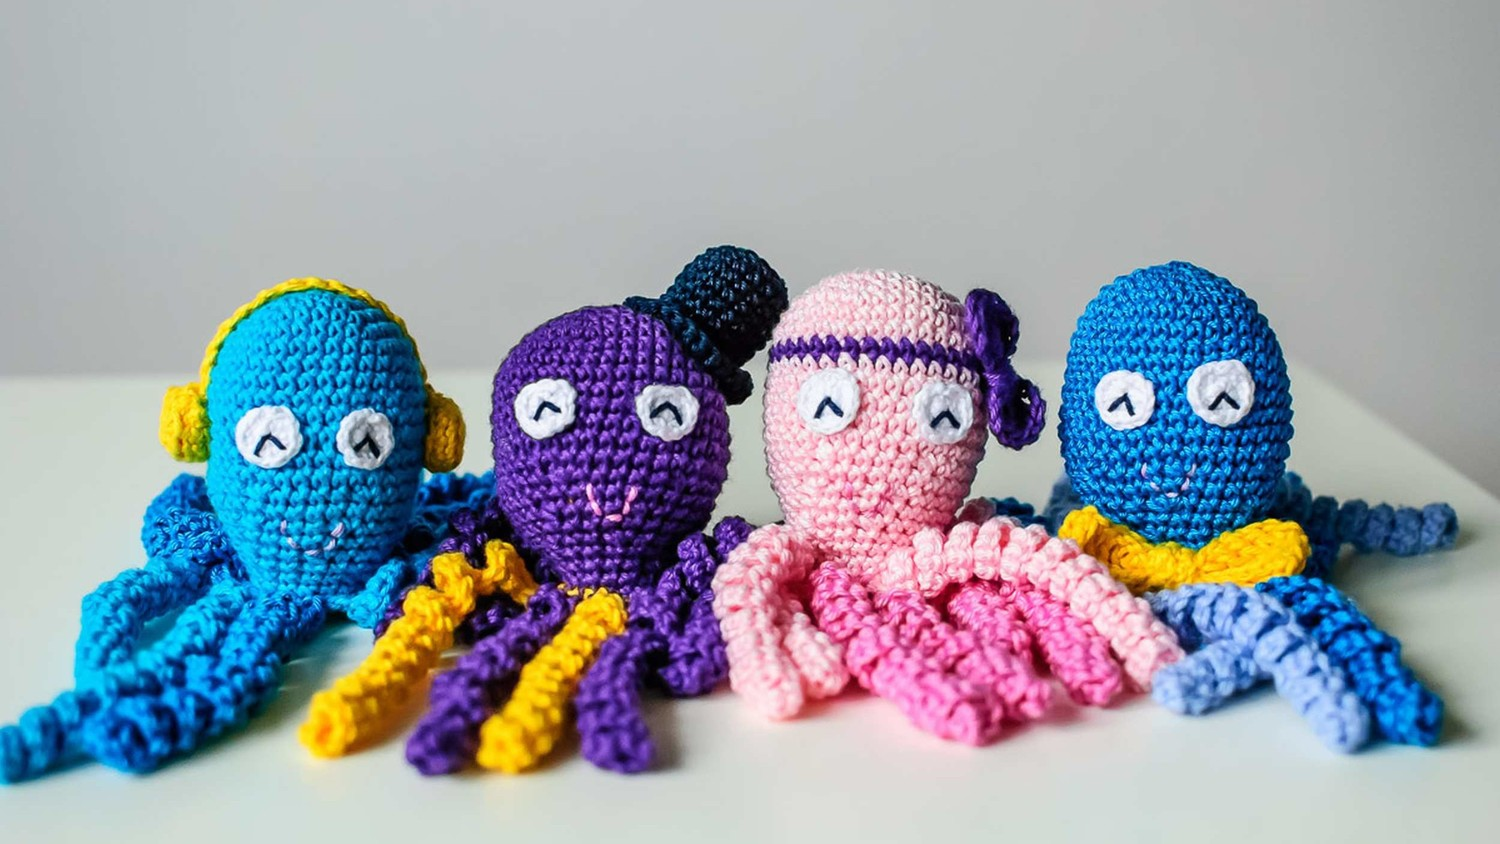 You Can Crochet An Octopus Toy To Help Comfort Premature